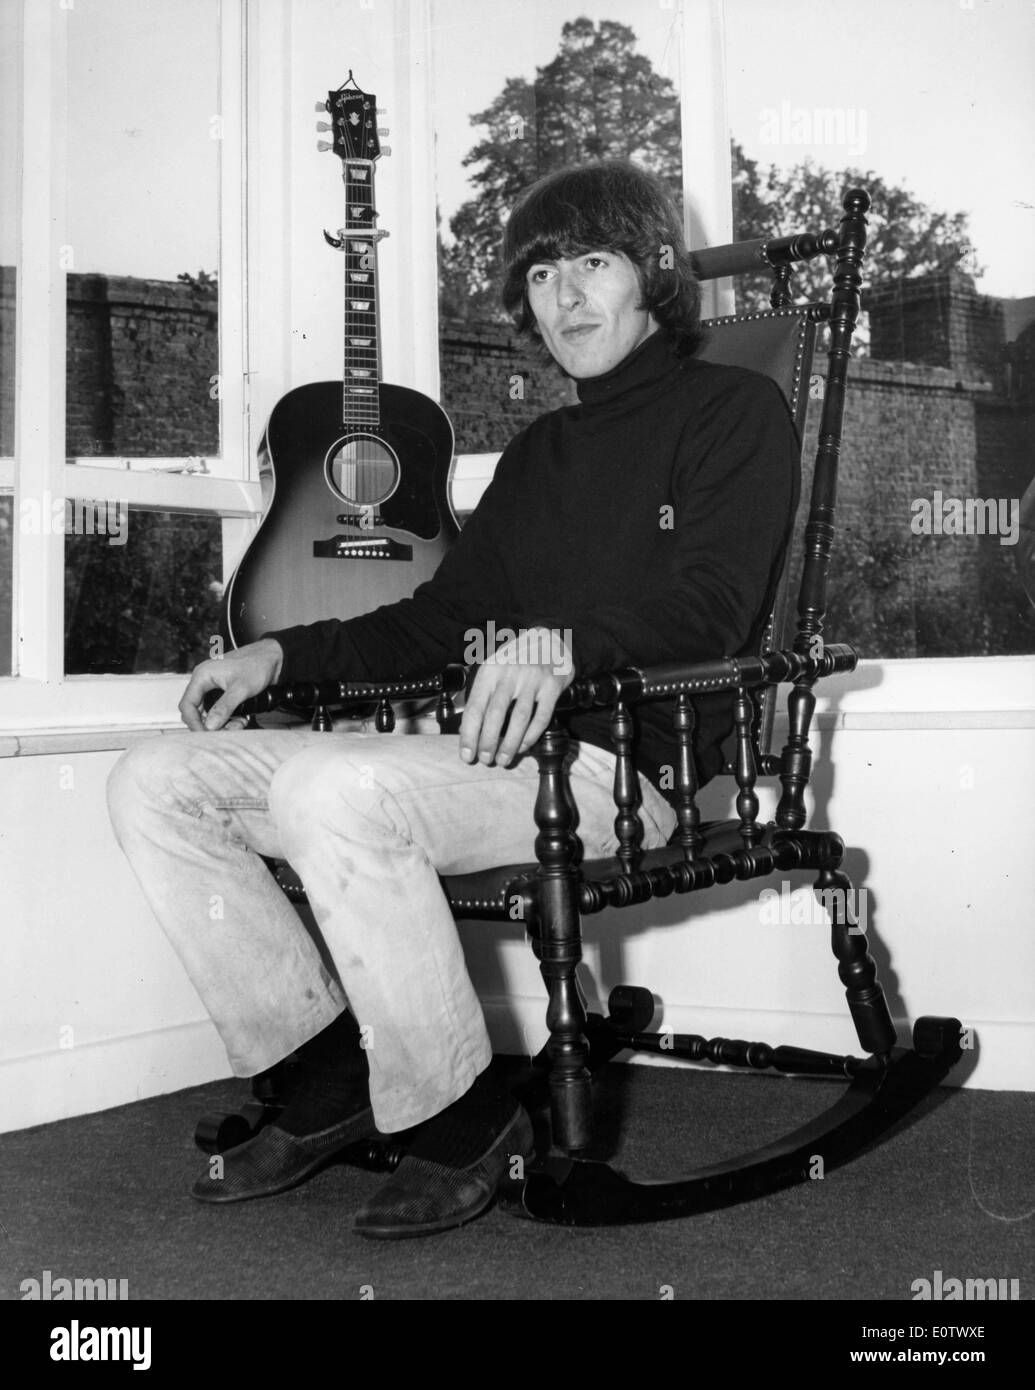 Beatle George Harrison relaxes in rocking chair - Stock Image